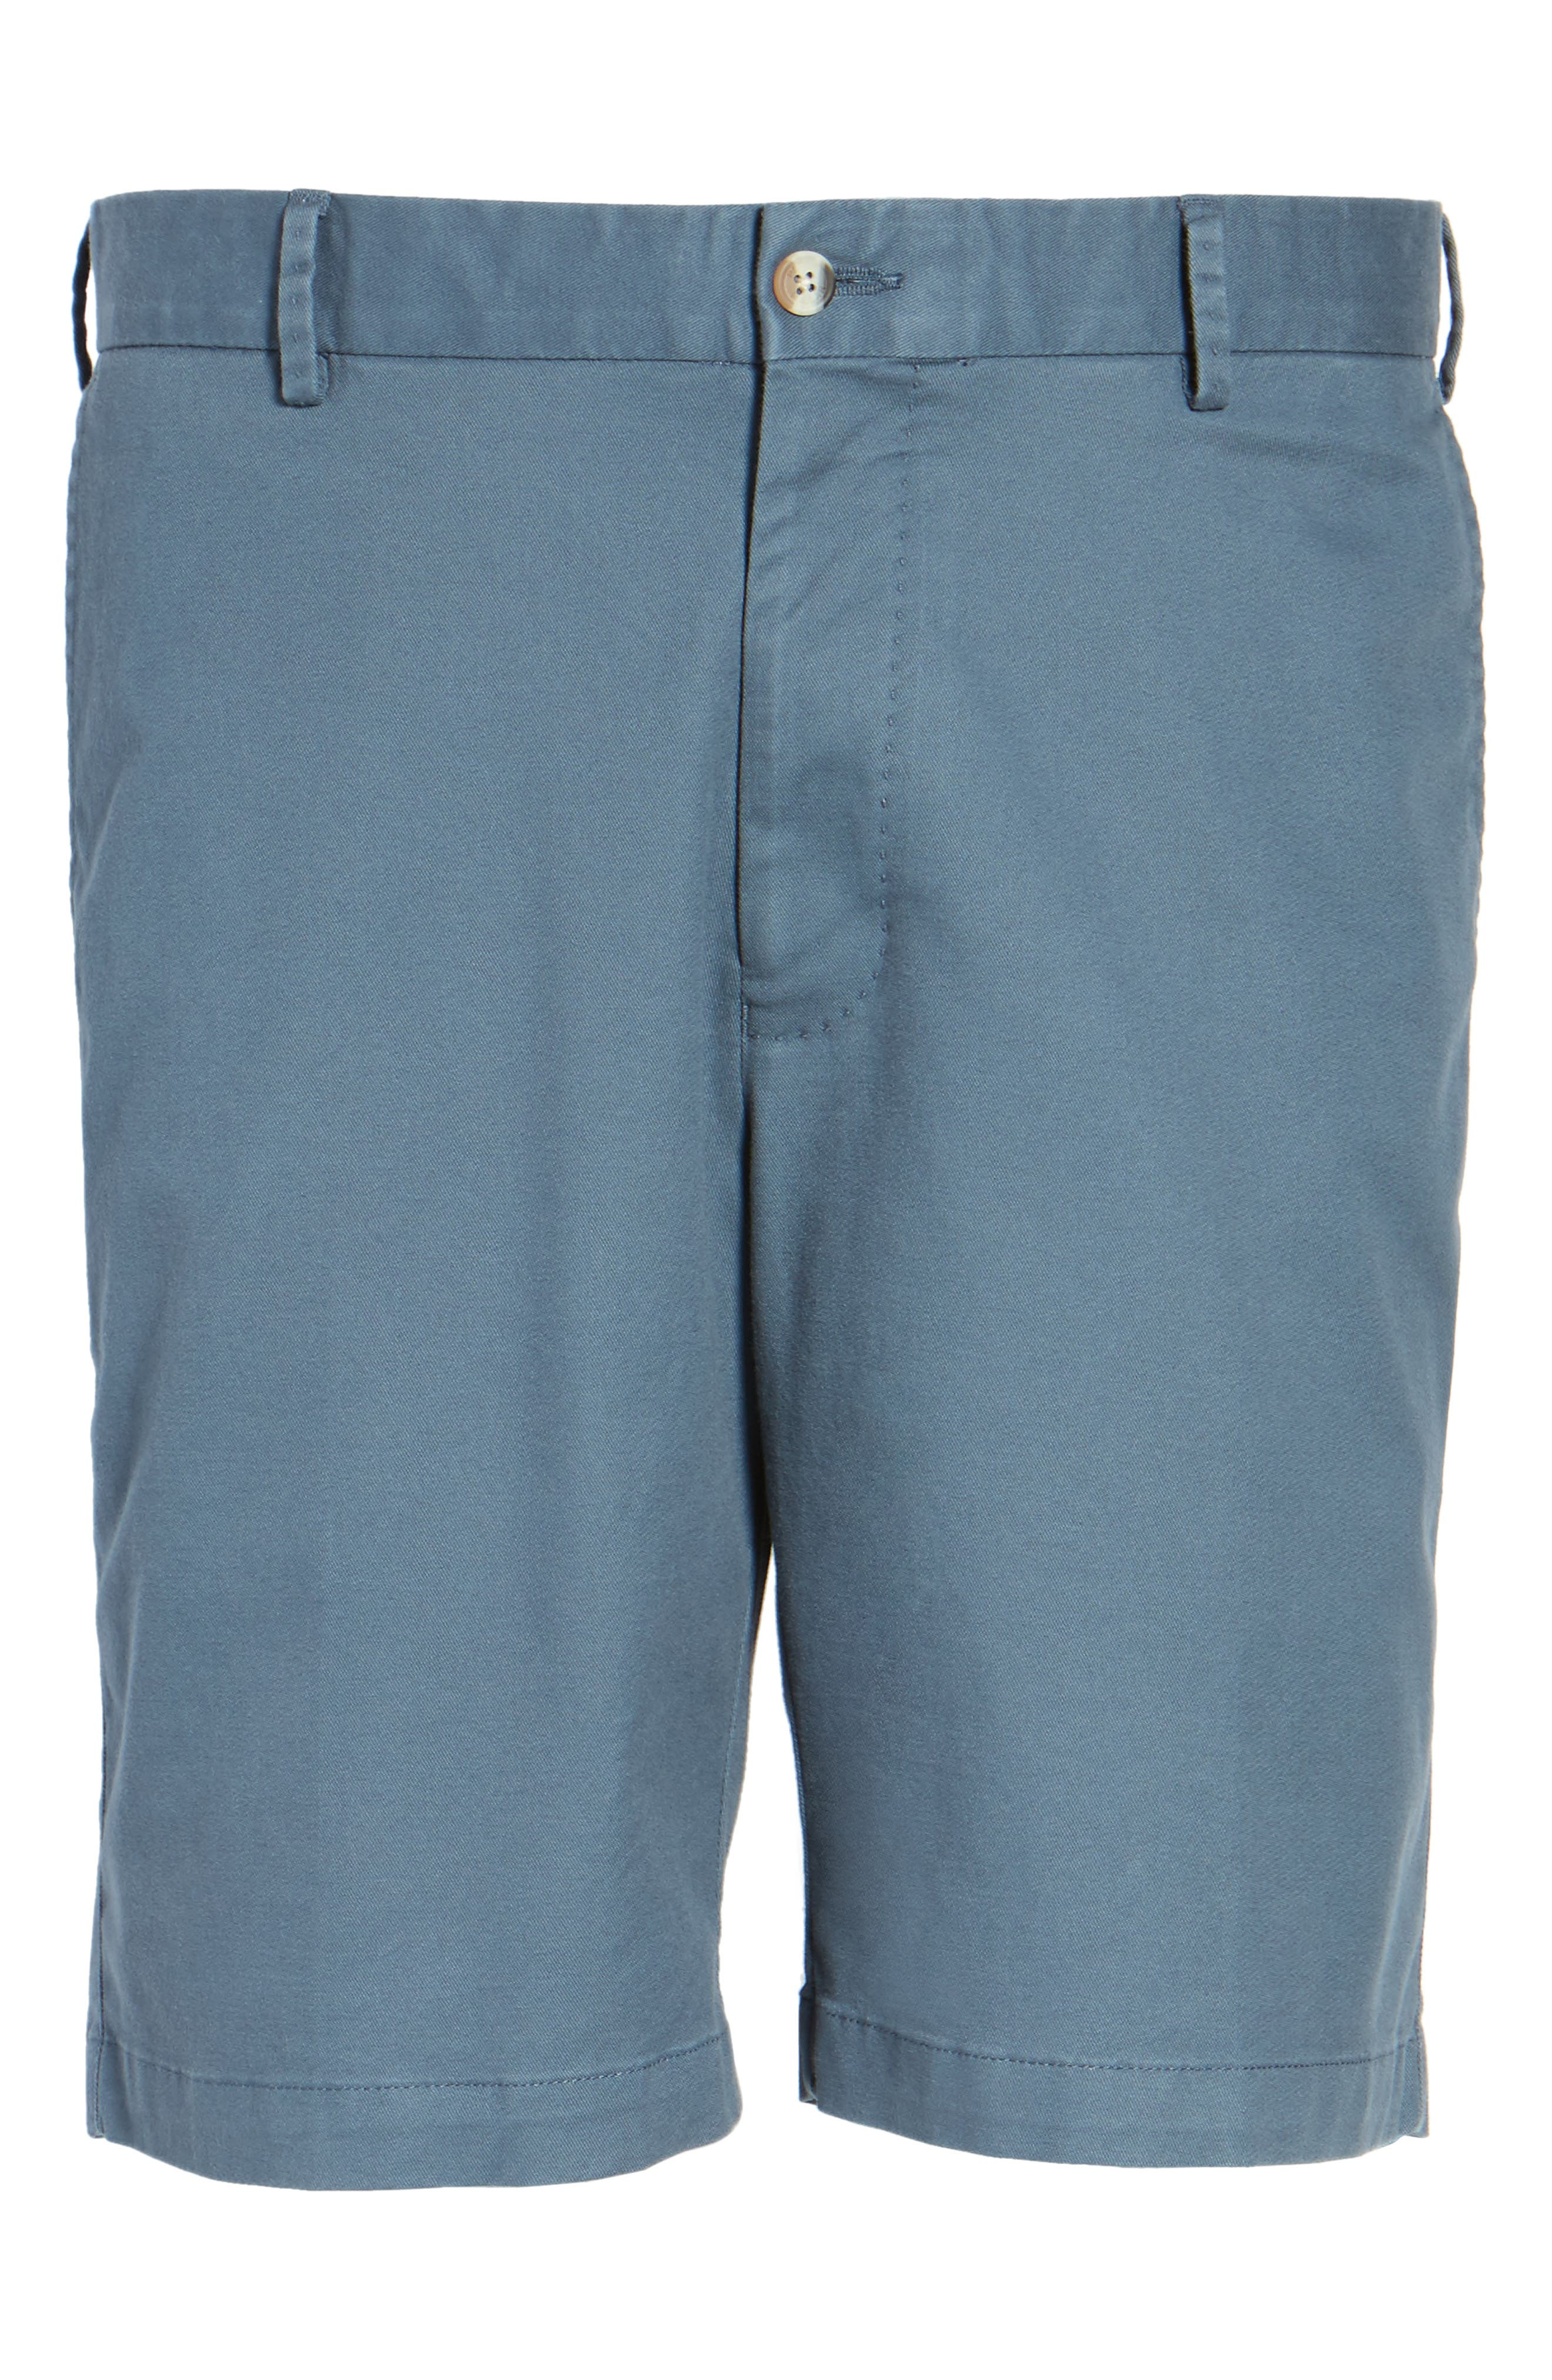 Soft Touch Stretch Twill Shorts,                             Alternate thumbnail 6, color,                             Navy